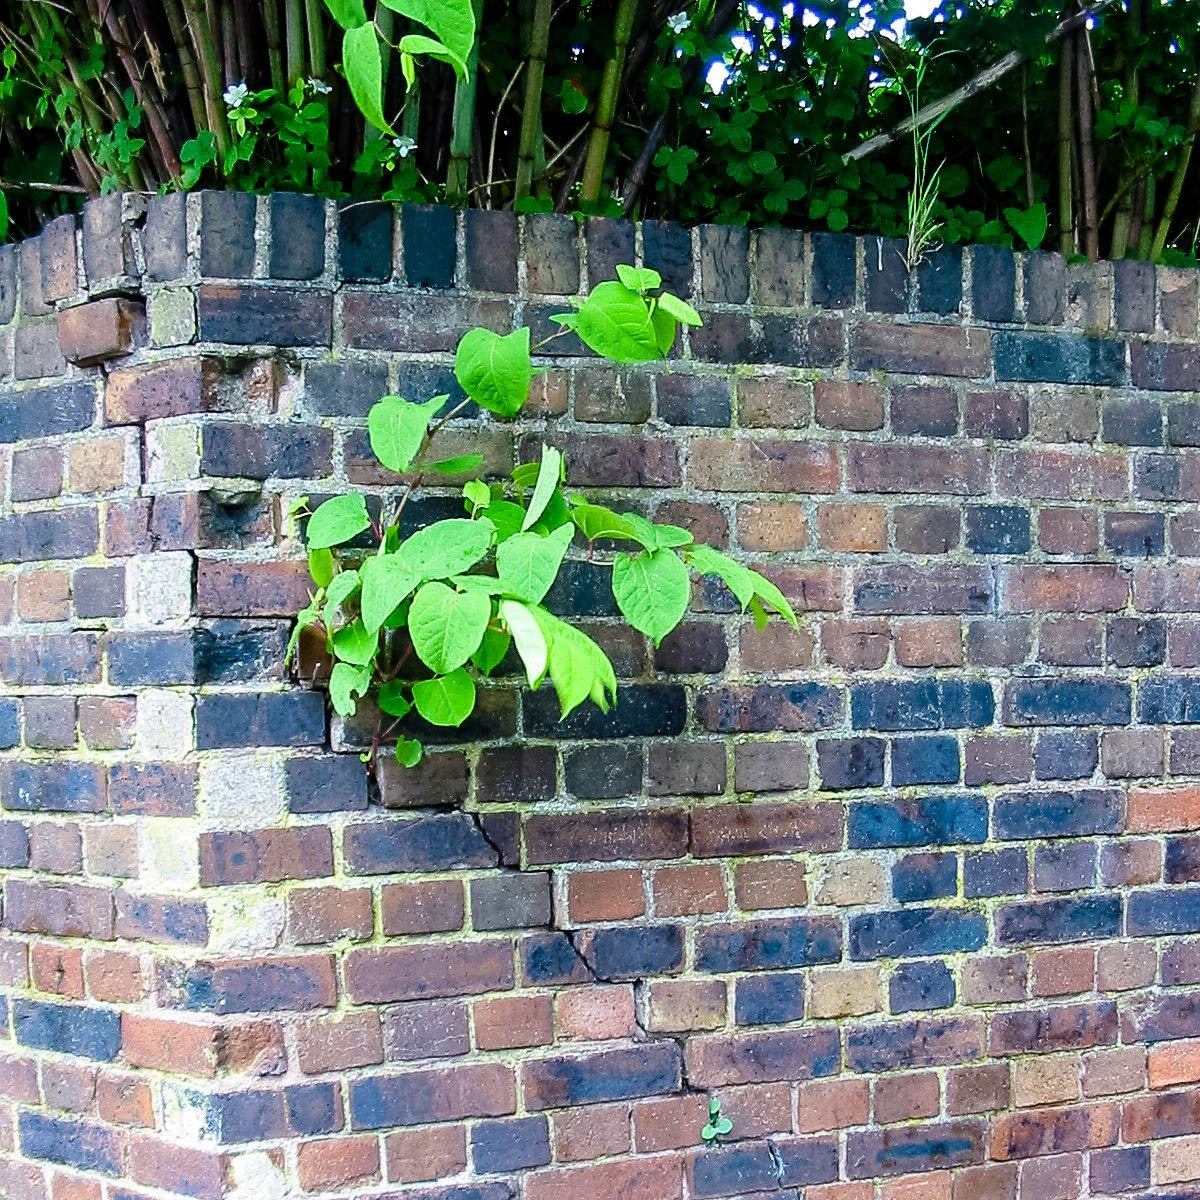 Knotweed growing out of a brick wall.